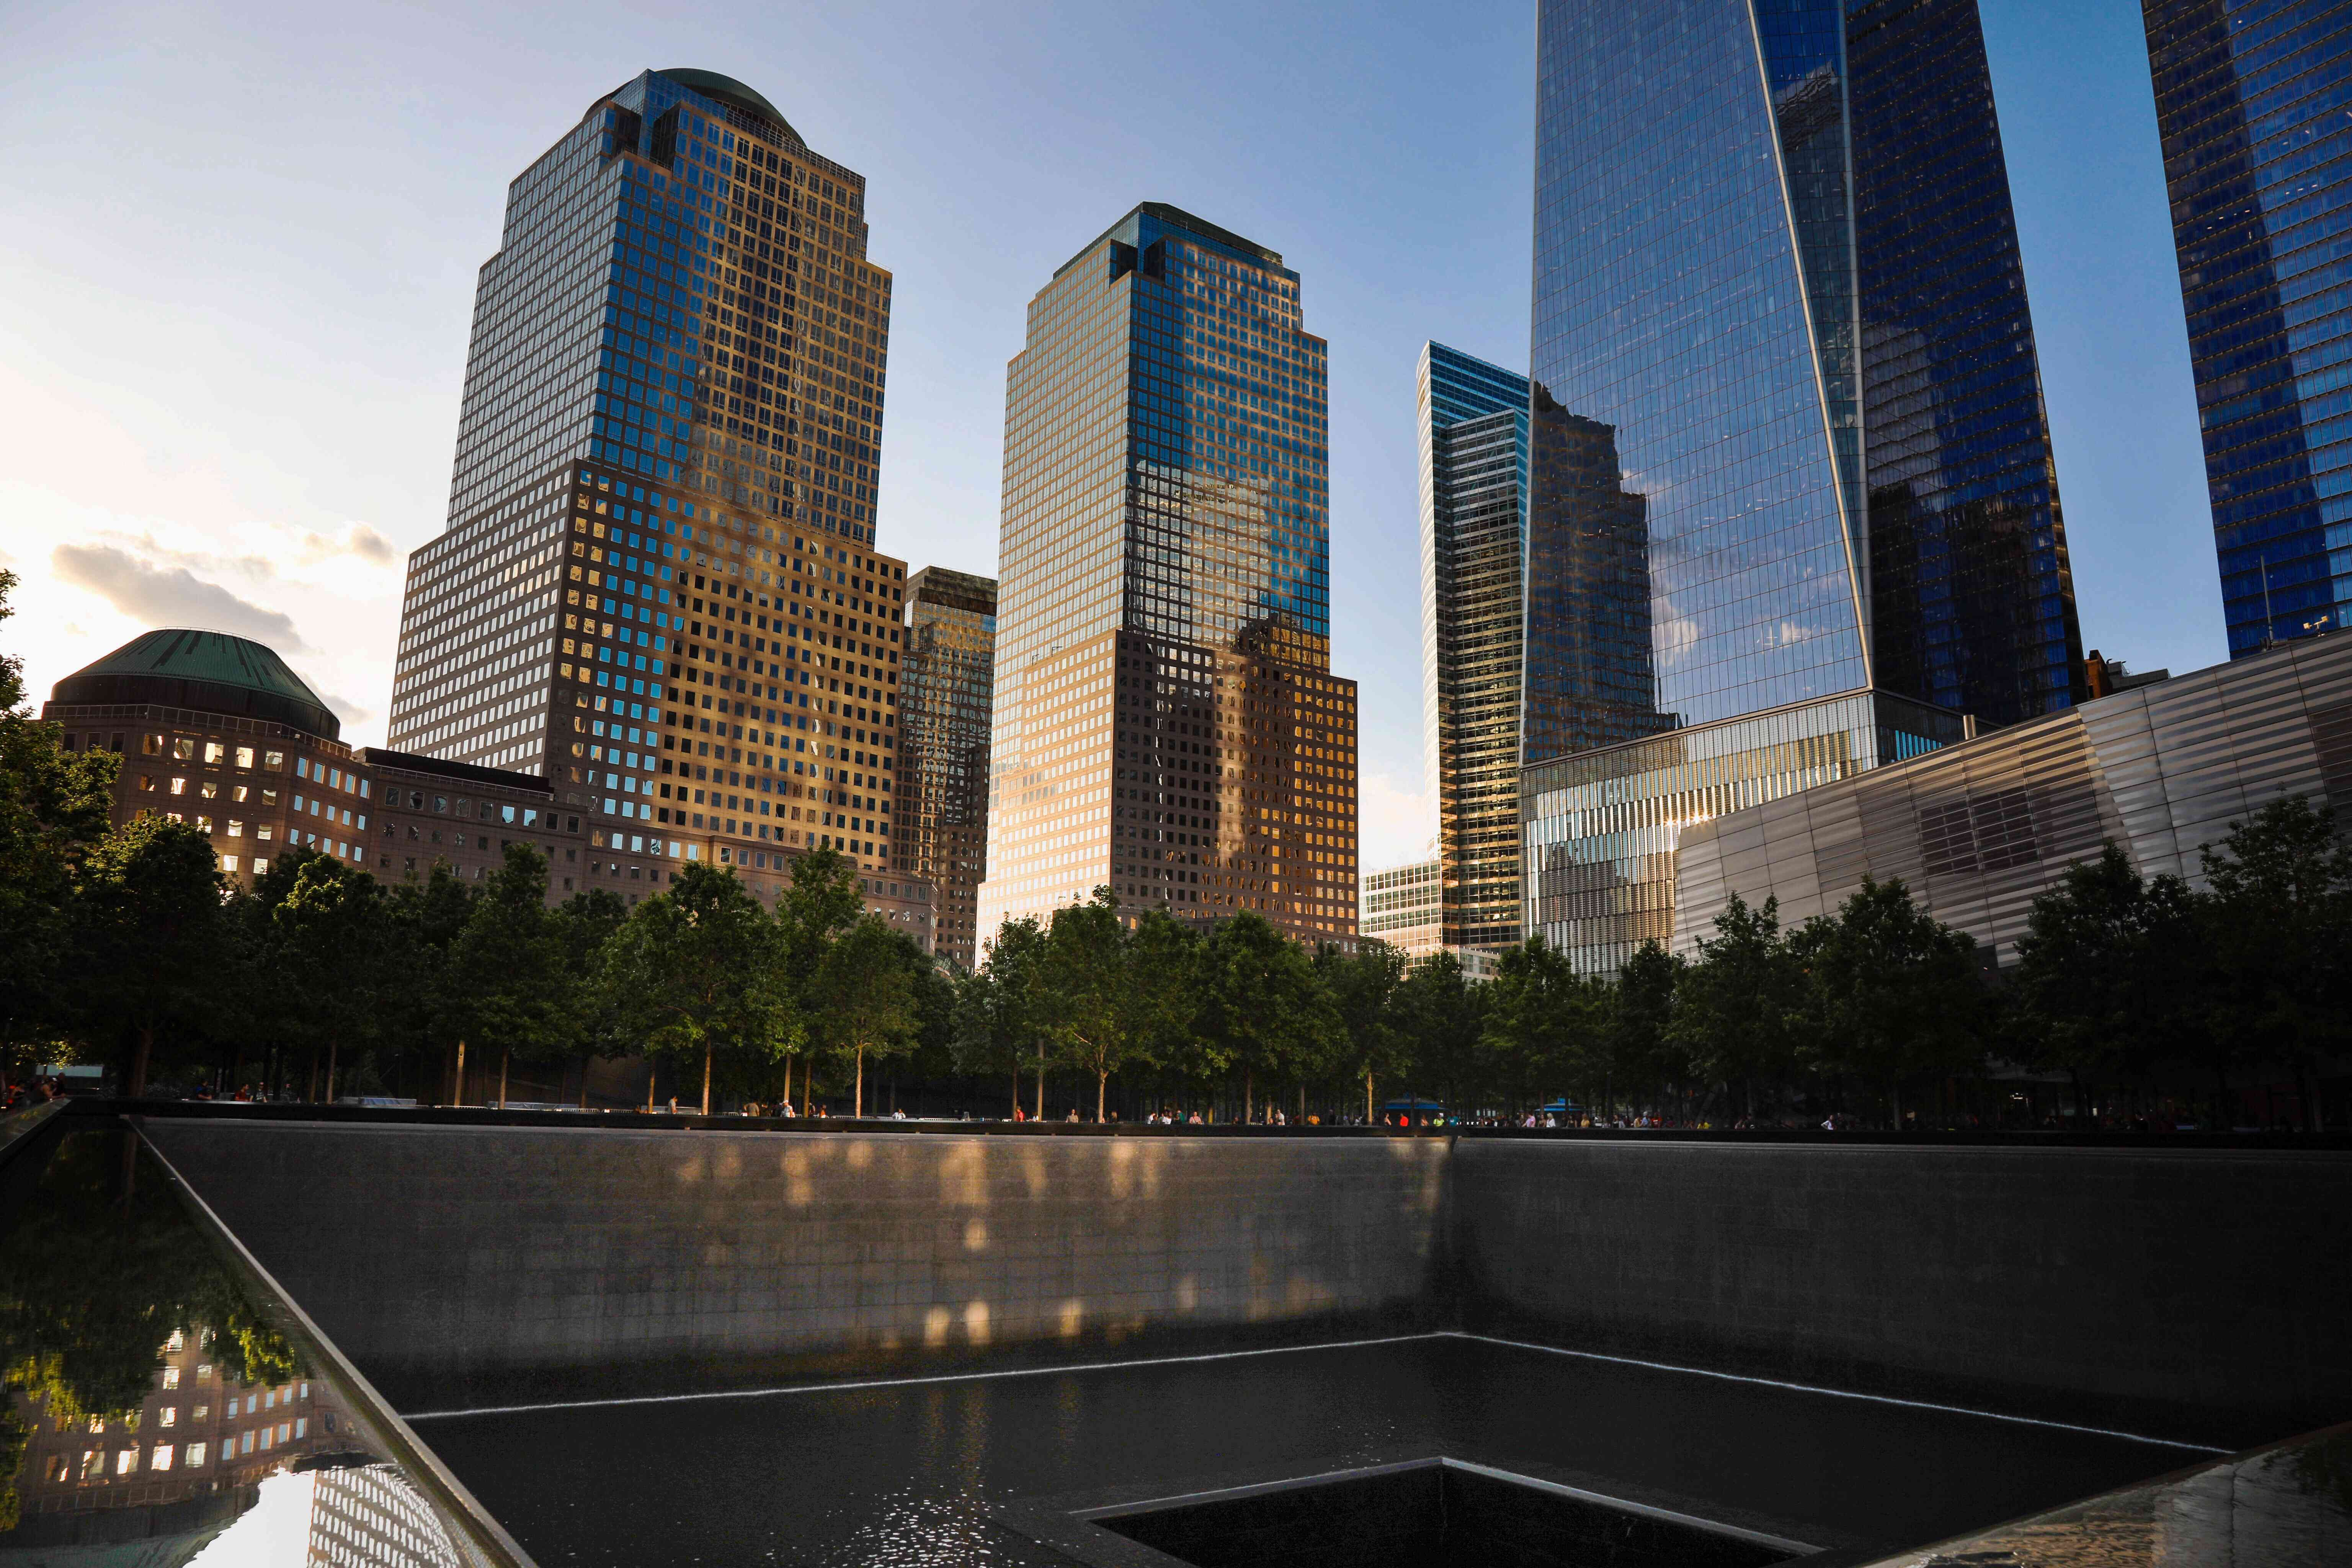 The 9-11 memorial waterfall with skyscrapers in the background